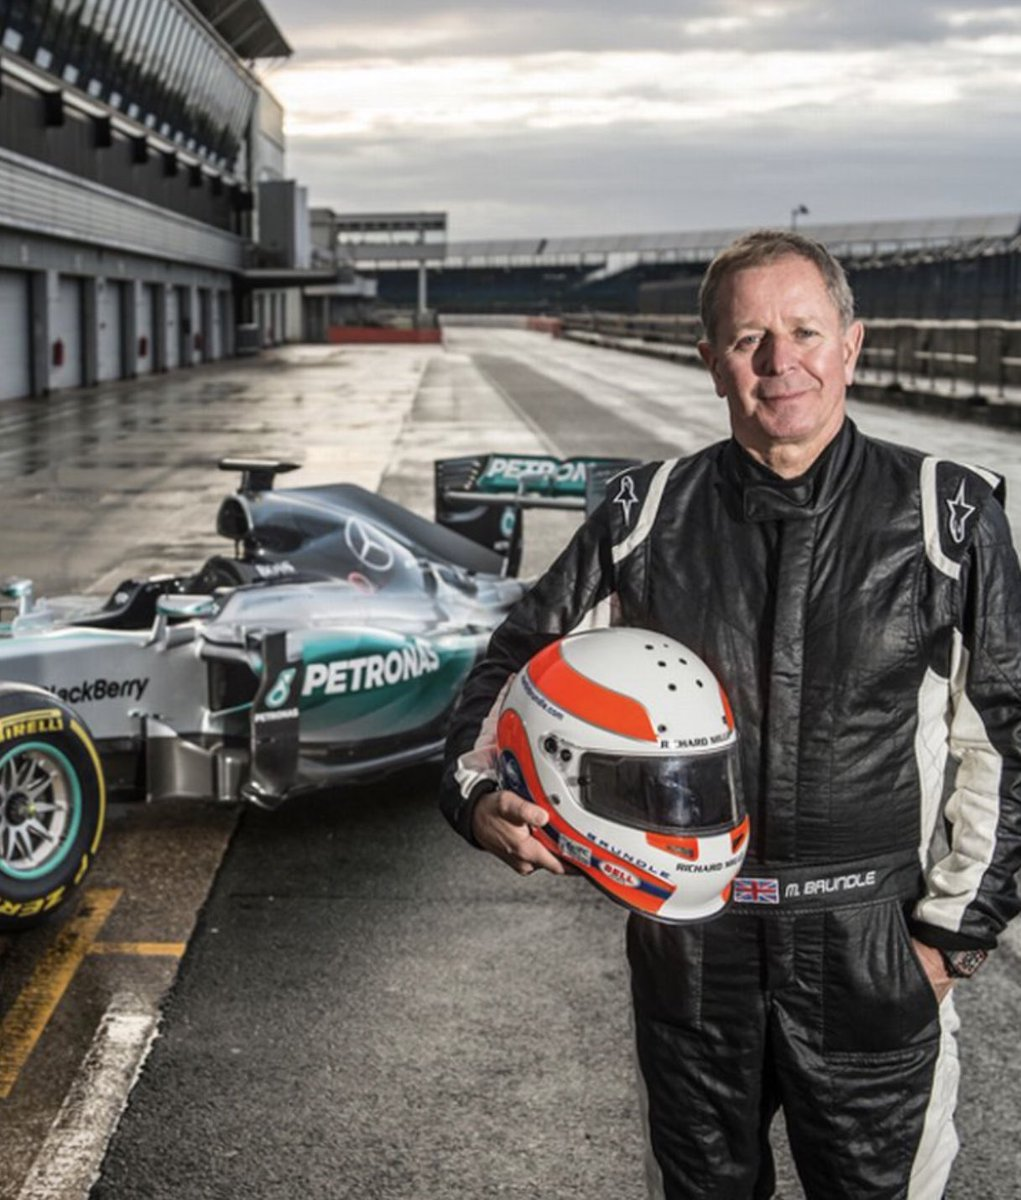 Btw if you need a little escapism @MBrundleF1 will be chatting live on insta suziperry100 tomorrow 9am and we won't mention road trips to Barnard Castle once ..... 🤫 #suzisbreakfastclub https://t.co/BP6CpcehlR